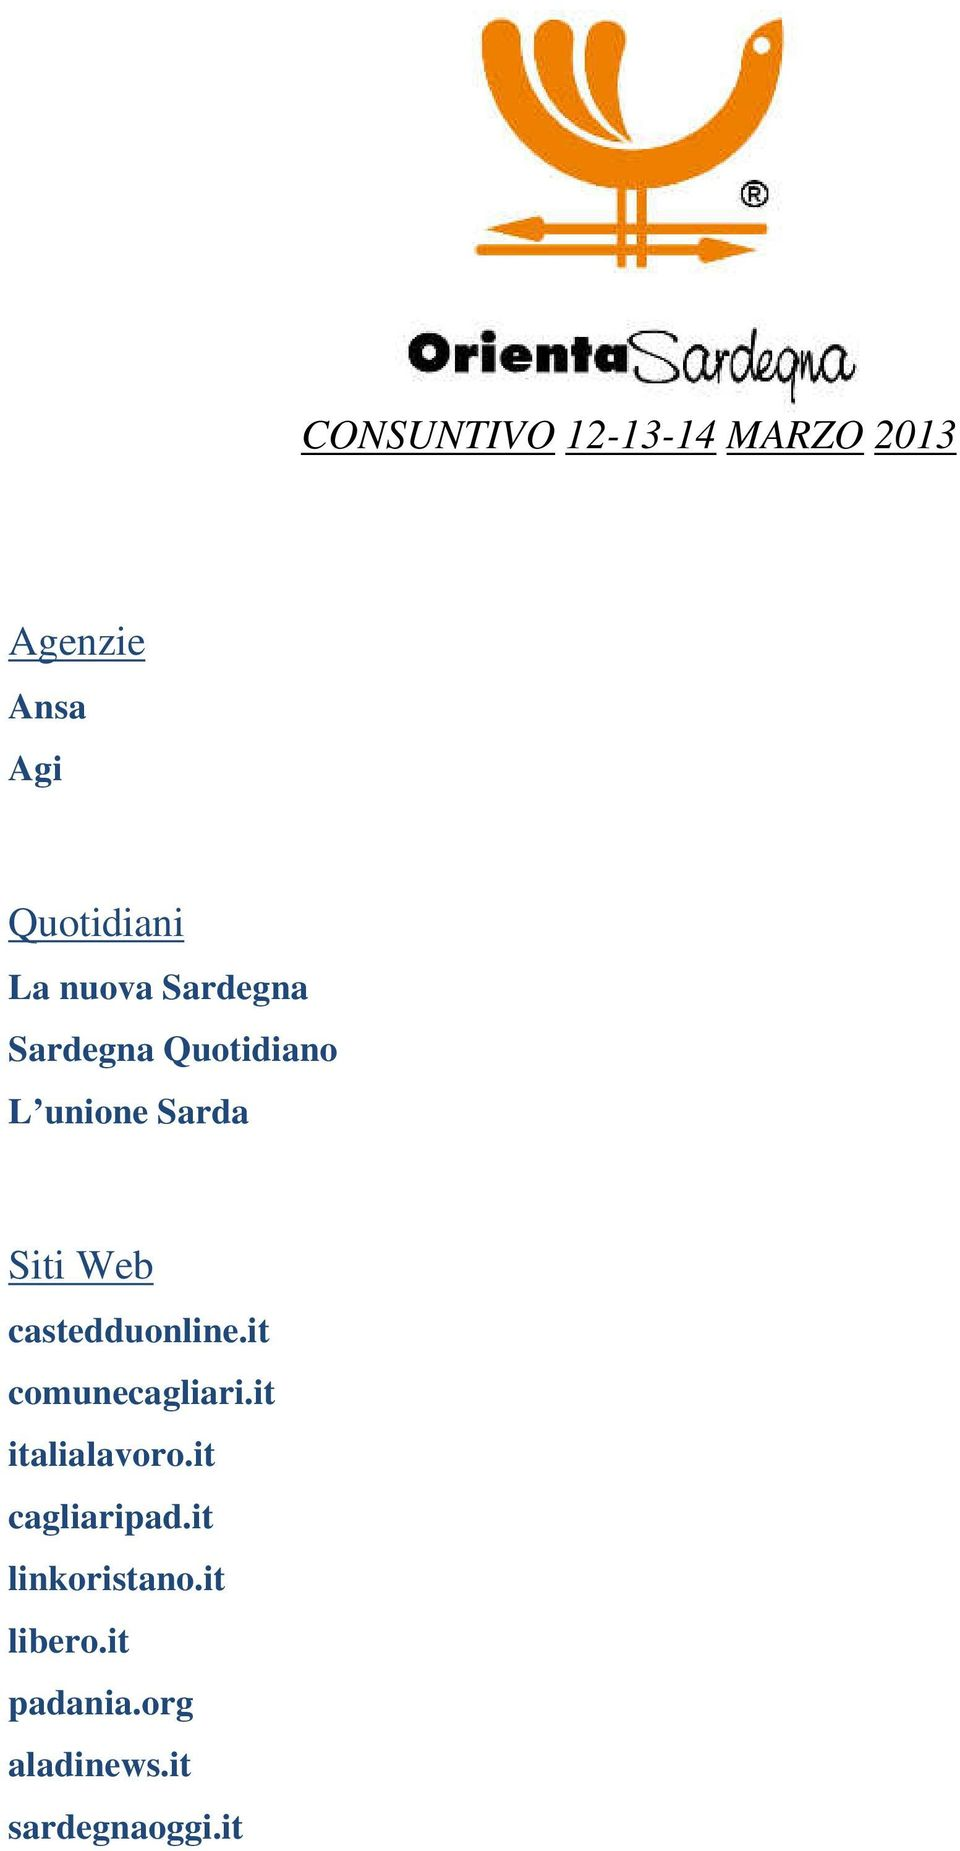 castedduonline.it comunecagliari.it italialavoro.it cagliaripad.